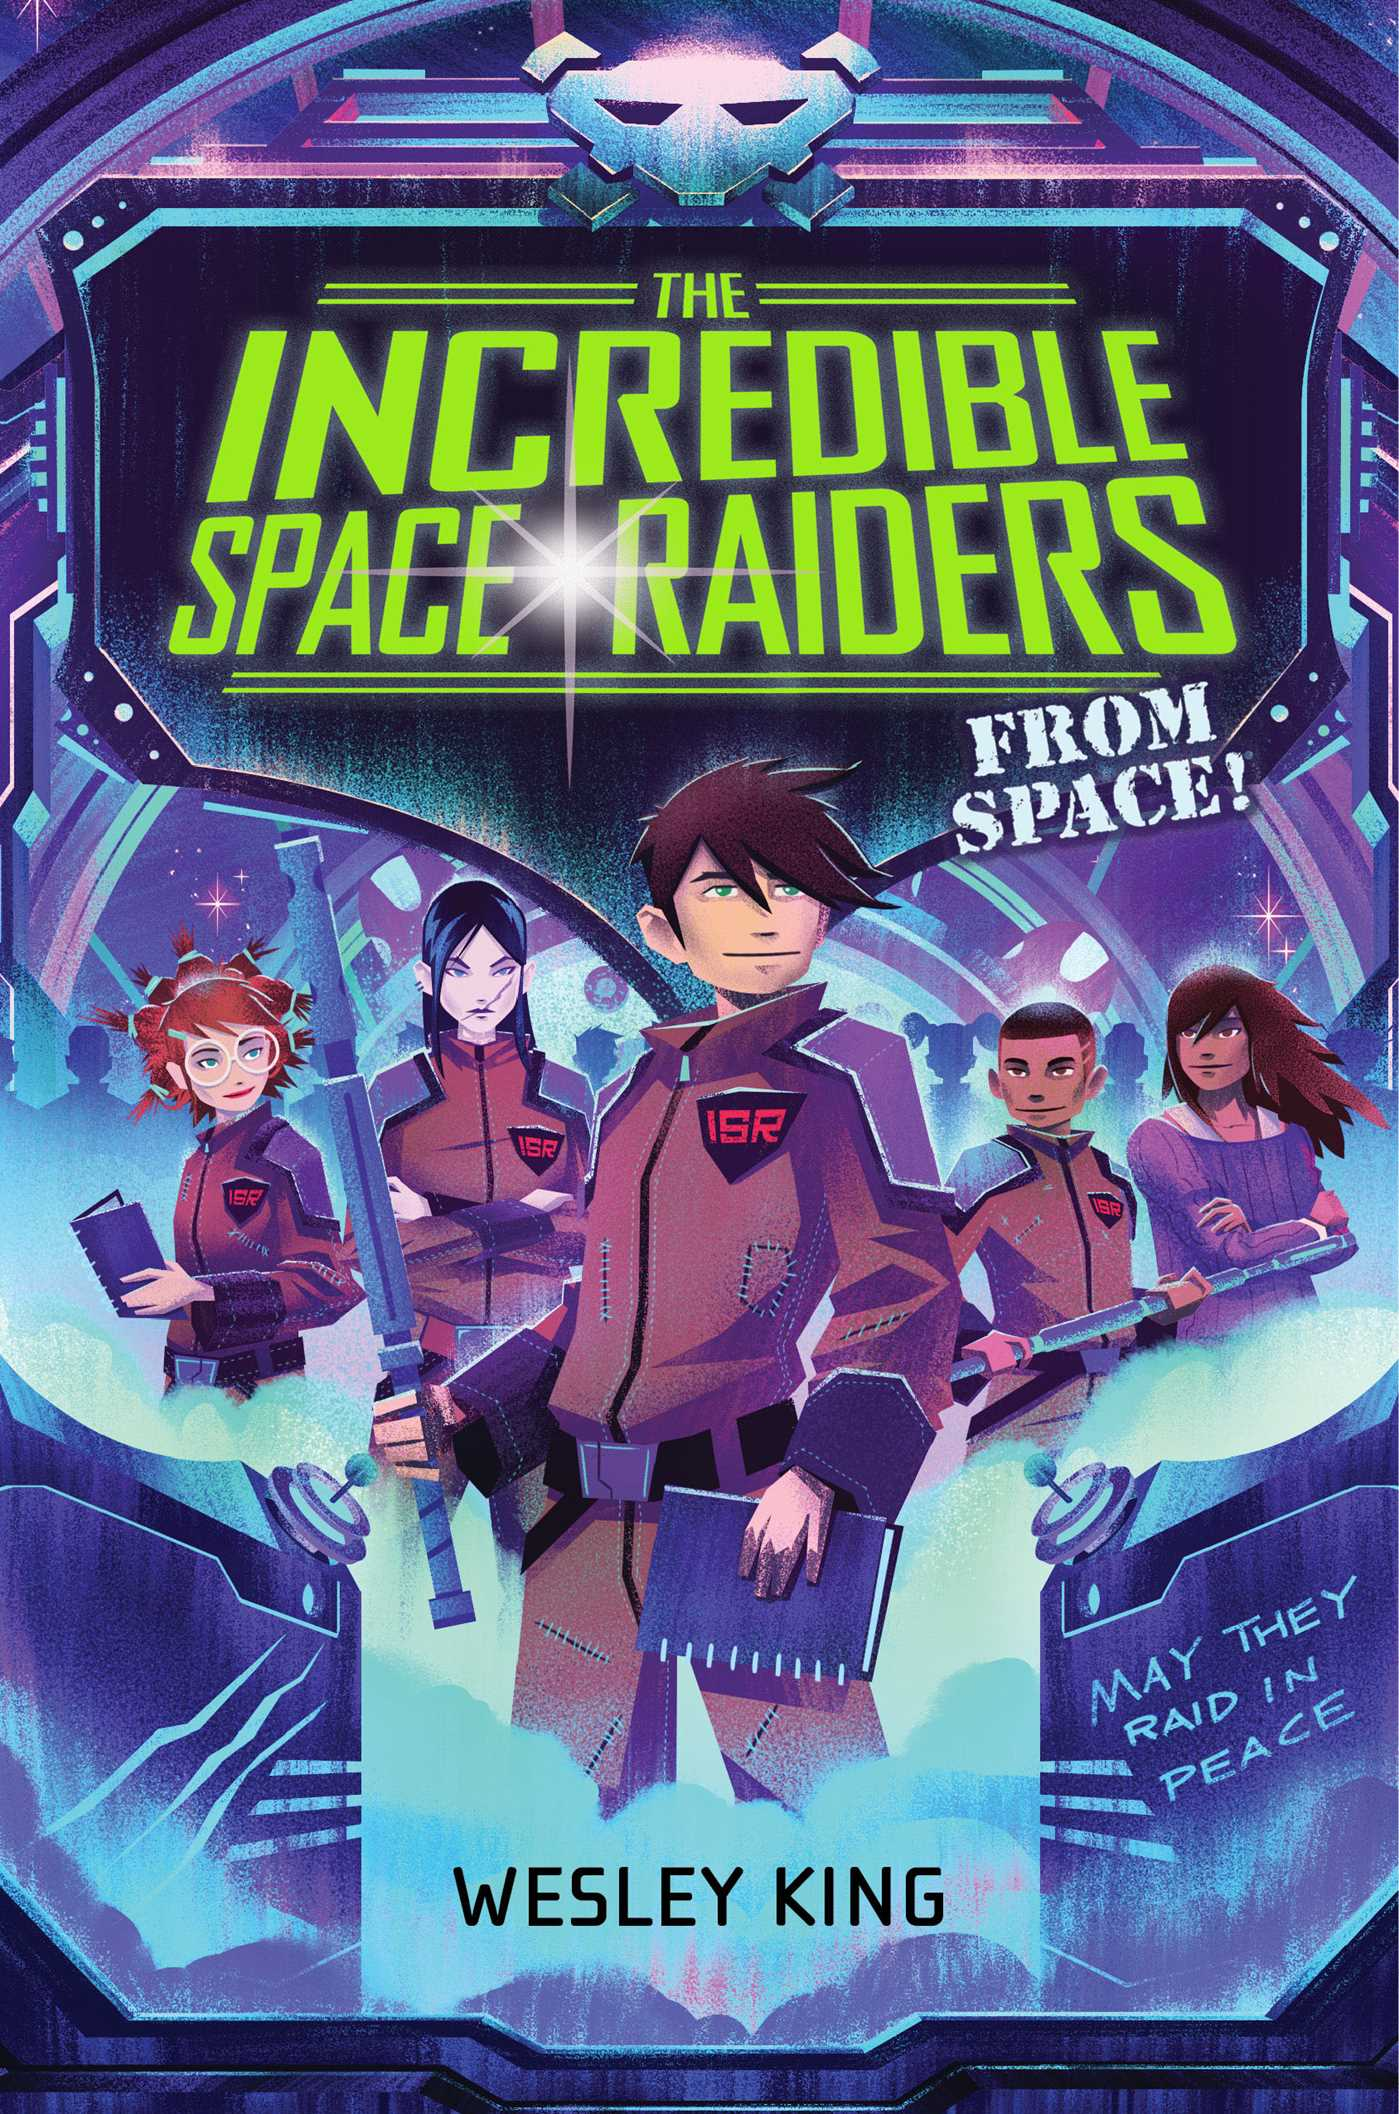 Incredible space raiders from space! 9781481423199 hr